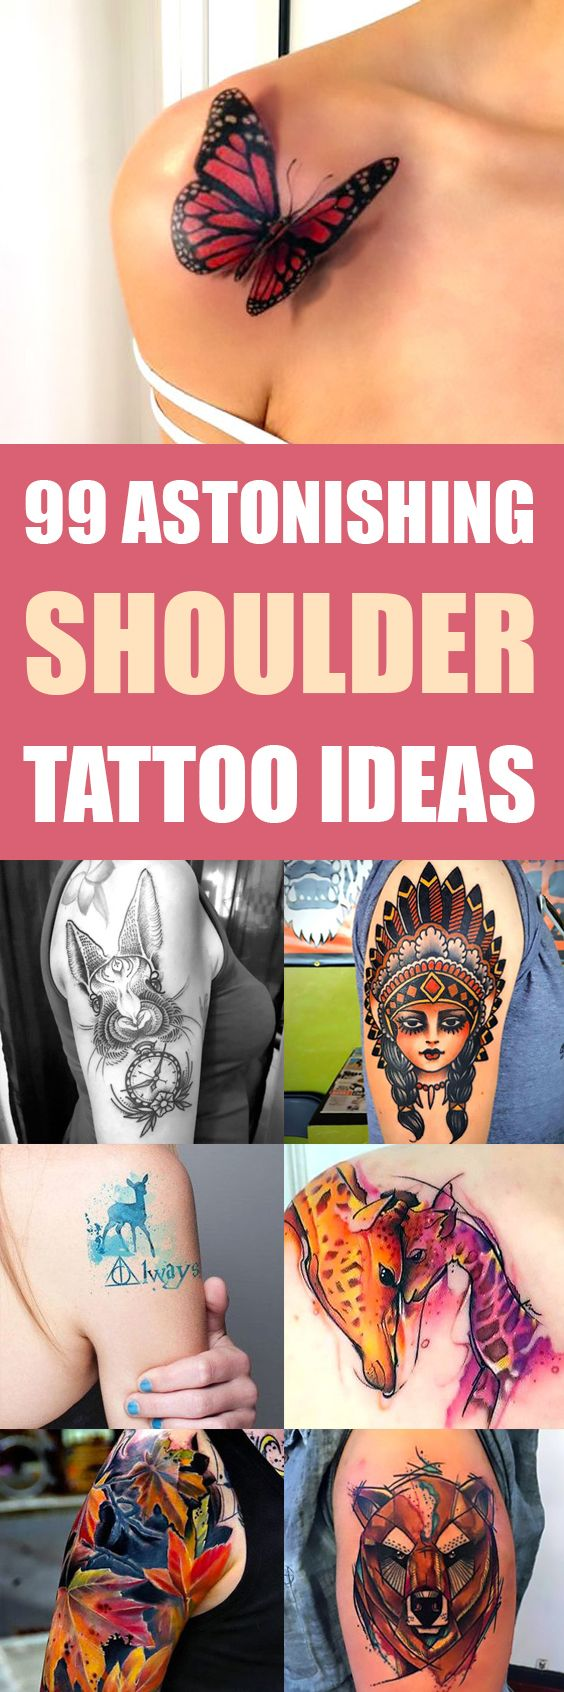 Shoulder tattoo designs are very popular with men. They're frequently chosen to represent masculinity, and stand as a testament/display of...